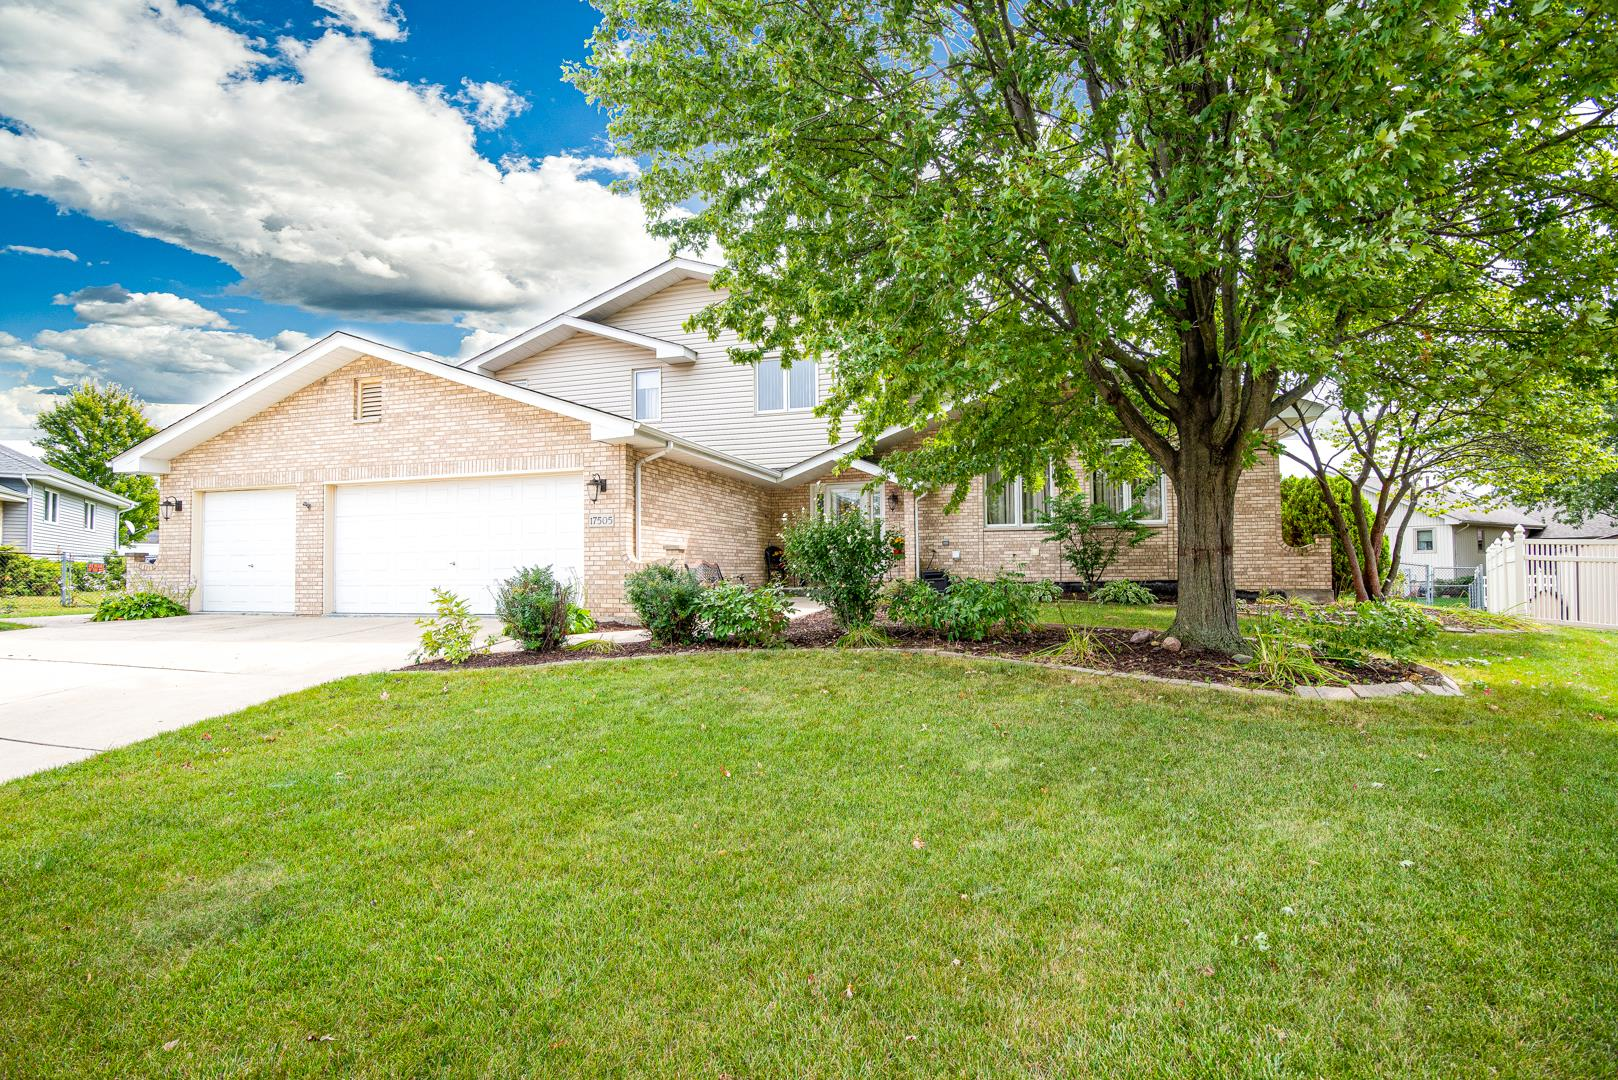 17505 Westbrook Drive, Orland Park, IL 60467 - #: 10839696